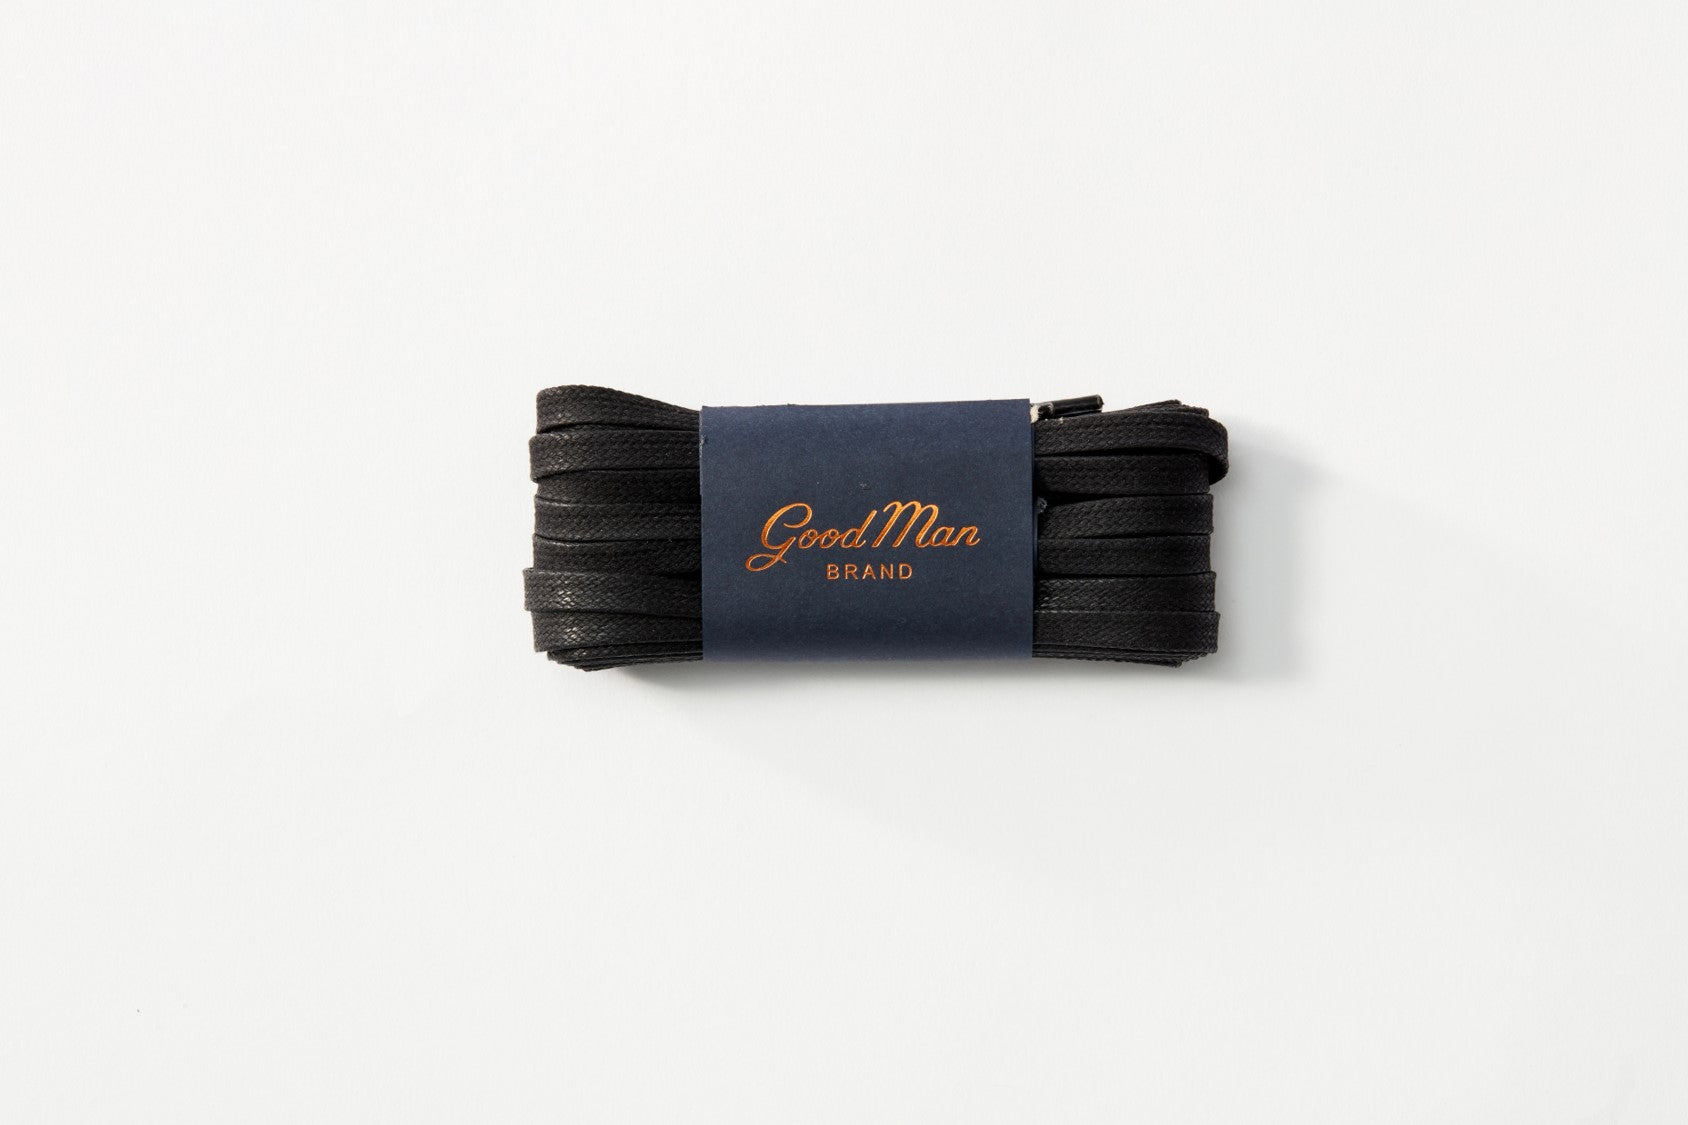 Waxed Cotton Laces 3 Pack - Black - Good Man Brand - Waxed Cotton Laces 3 Pack - Black